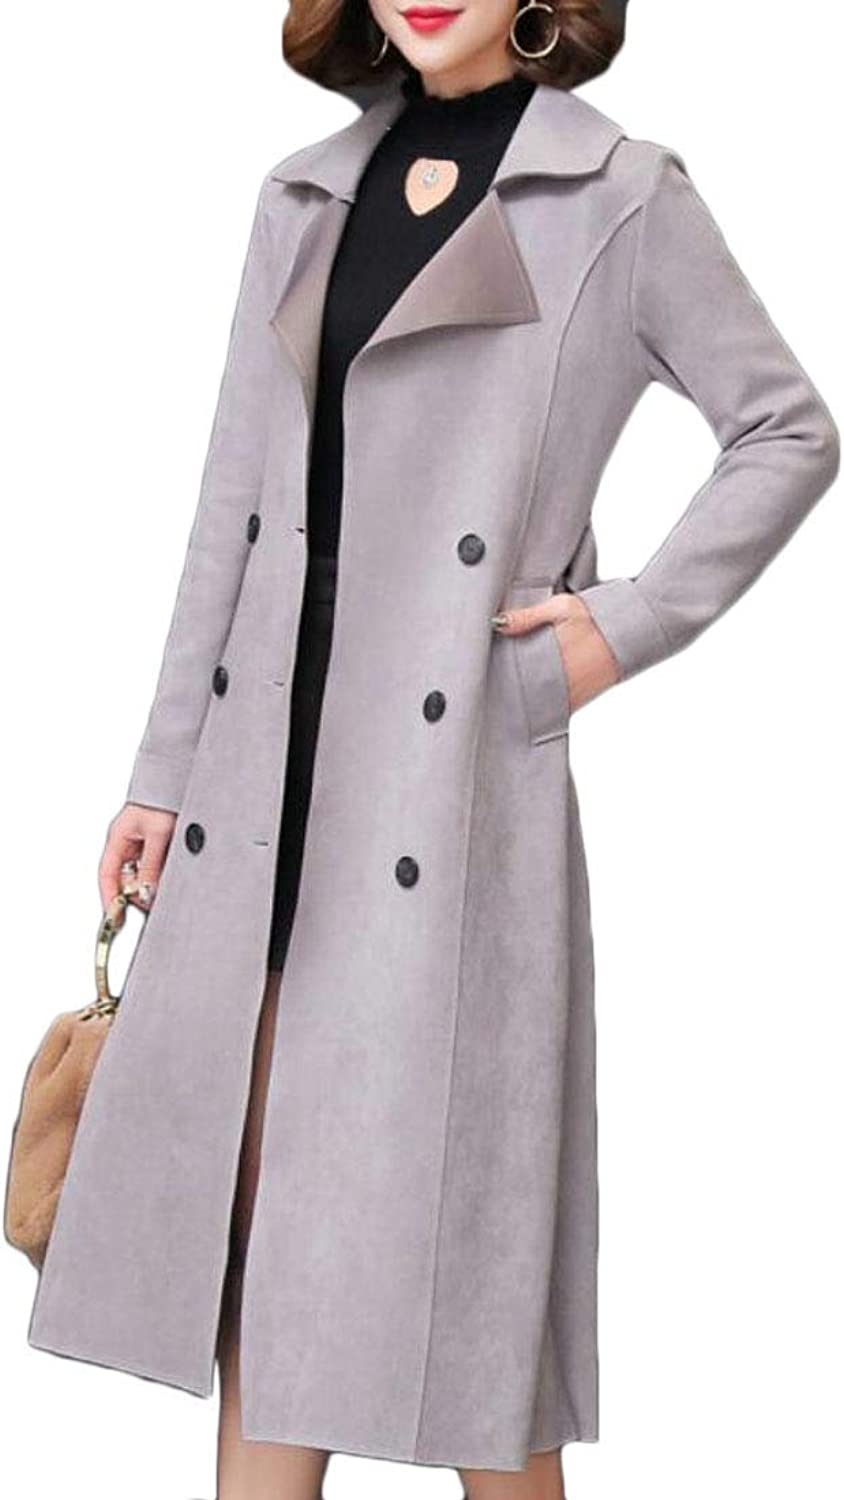 Rrive Women's Faux Suede Stylish Overcoat DoubleBreasted Belted Long Trench Coat